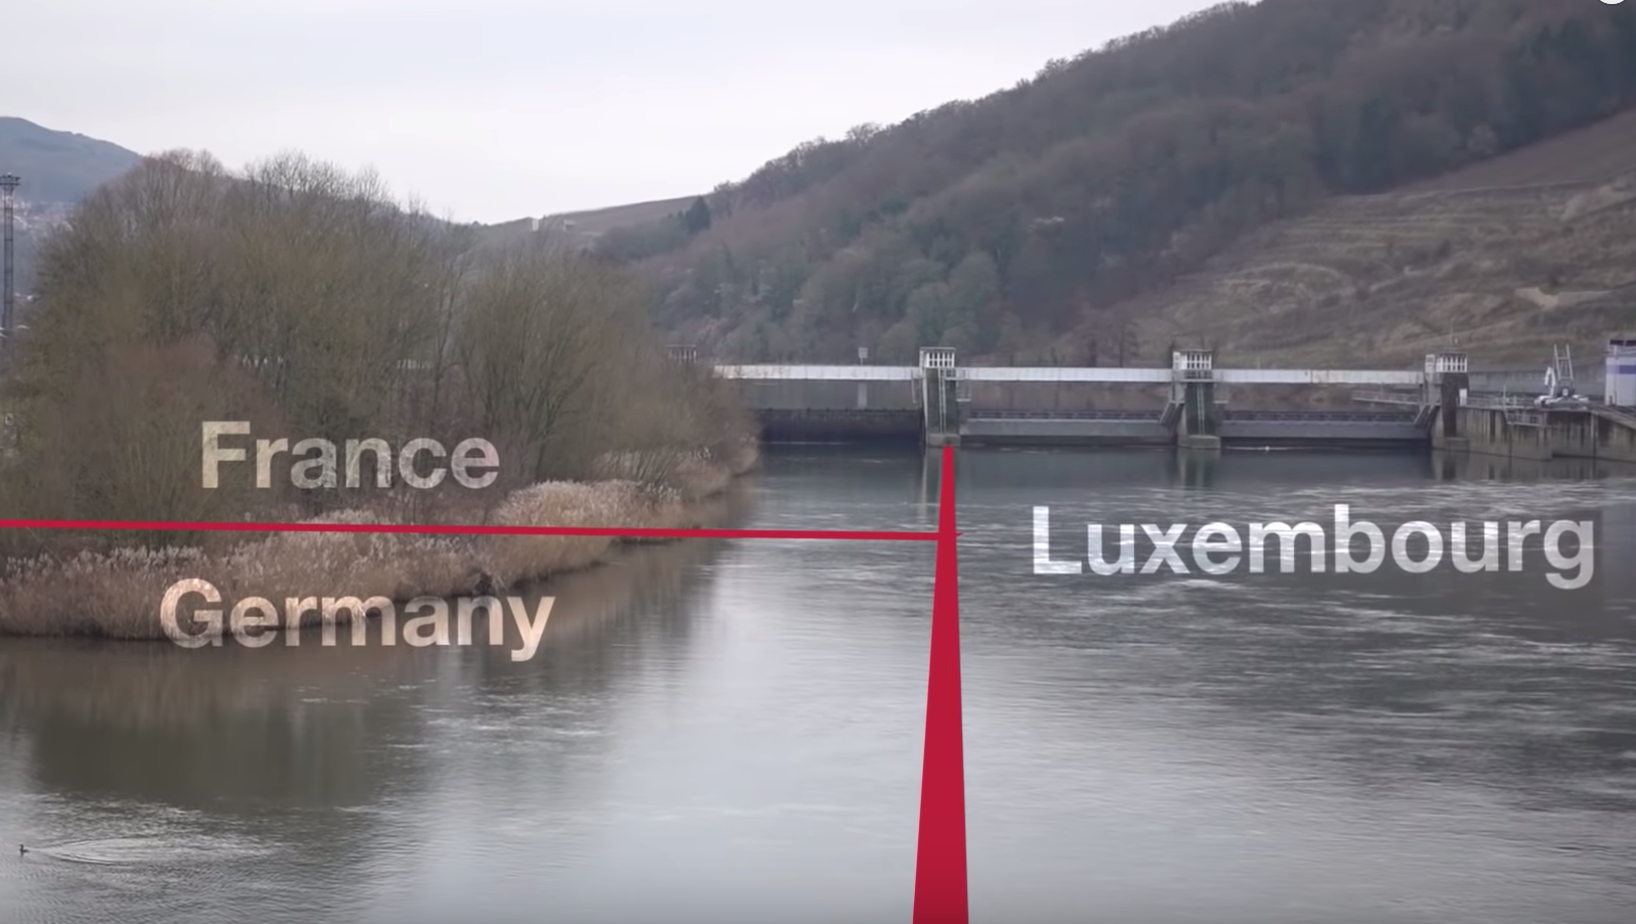 The Curious Case Of The Bridge That's In Two Countries At The Same Time